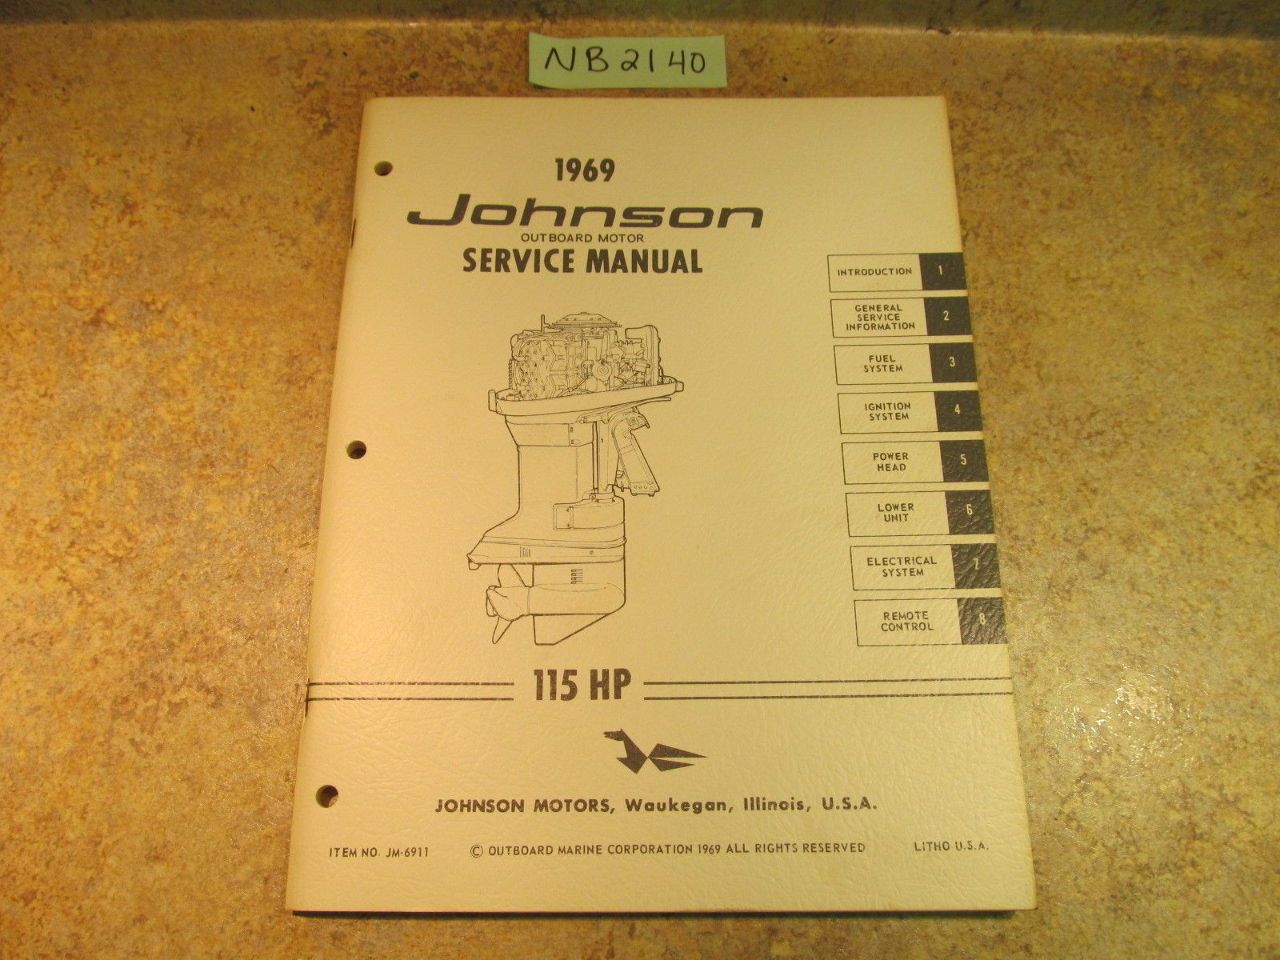 1969 johnson evinrude outboard service manual year set 15 115 hp 1969 johnson evinrude outboard service manual year set 15 115 hp sciox Image collections